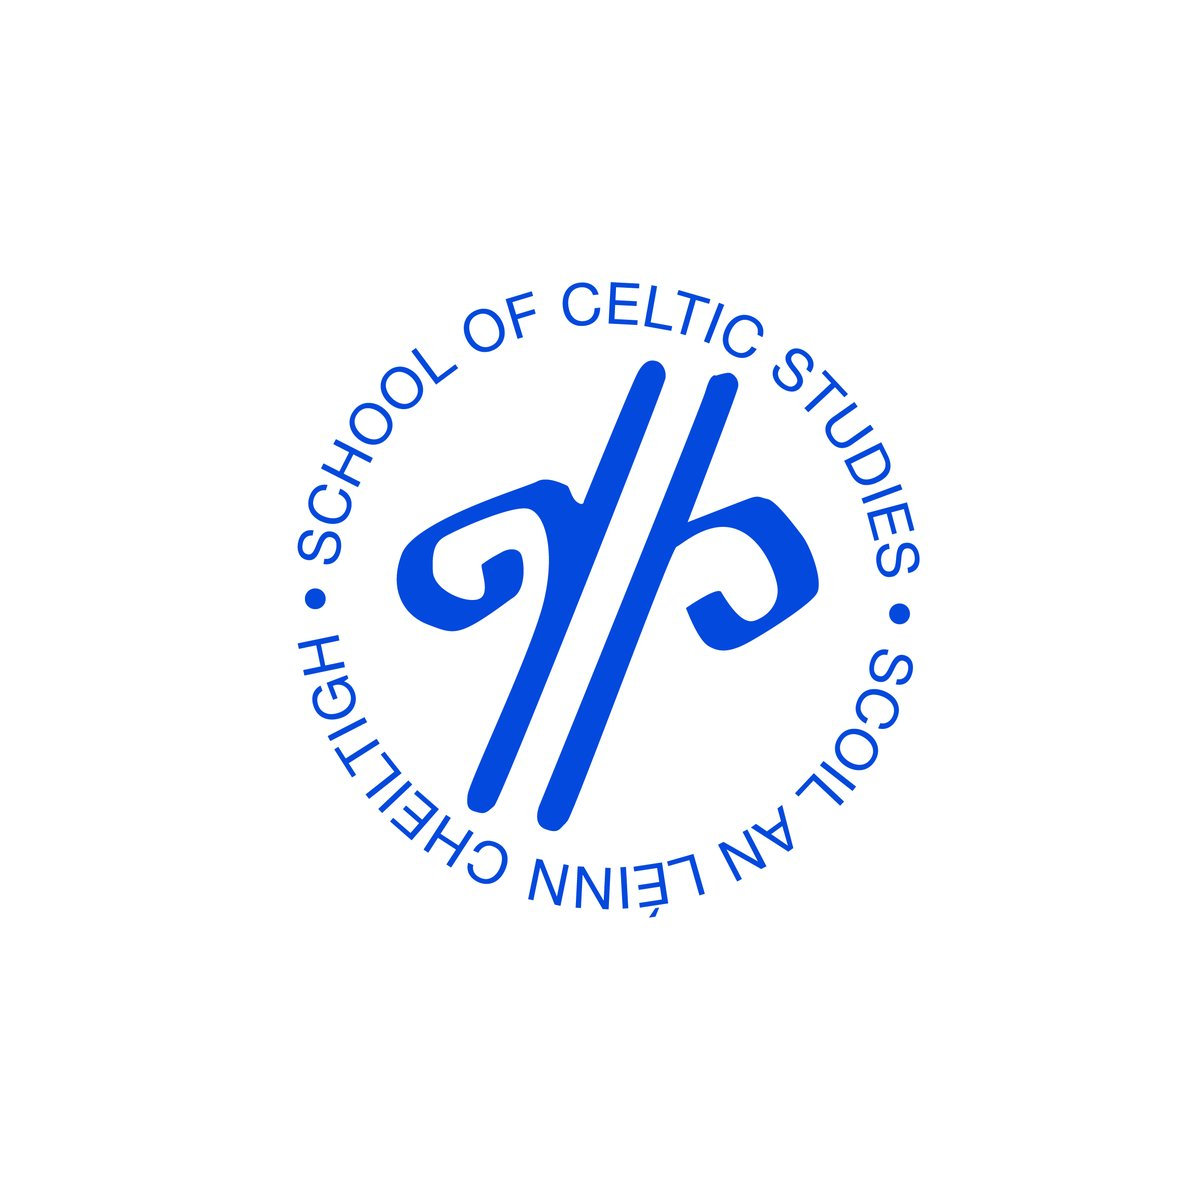 test Twitter Media - The School of Celtic Studies is able to offer a scholarship to be taken up in October 2020.  #CelticStudies #LoveIrishresearch #Scholarships #DIASdiscovers #DIASscholars  Application details here: https://t.co/peh82c2YkA https://t.co/GOa5XlmgdI